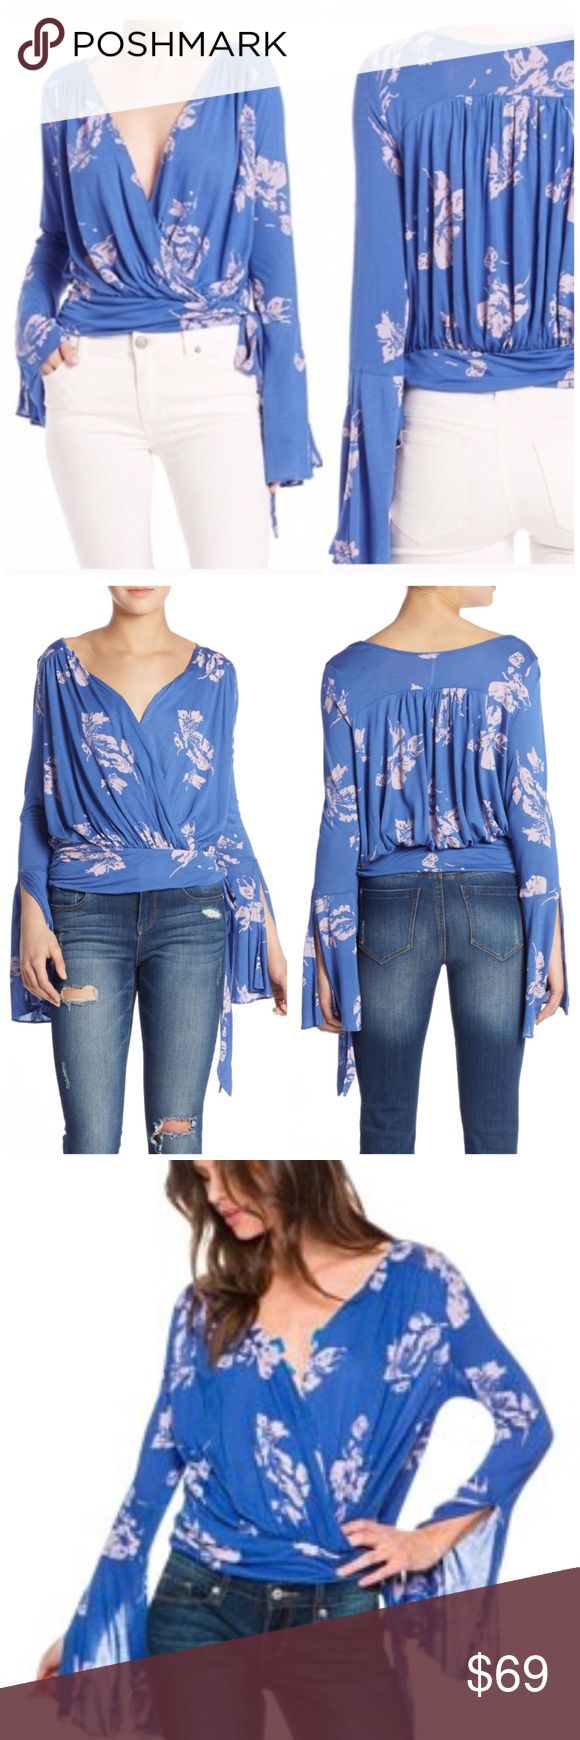 Free People Fiona Wrap Bell-Sleeve Boho Top Blue NWT Product Details: Rayon Machine washable Imported Plunging surplice neckline, Pullover style; ties at side, Long bell sleeves, Allover print, Wrap styling. Boho chic style. *Last two photos are actual item, all other photos are stock photos. Free People Tops Blouses